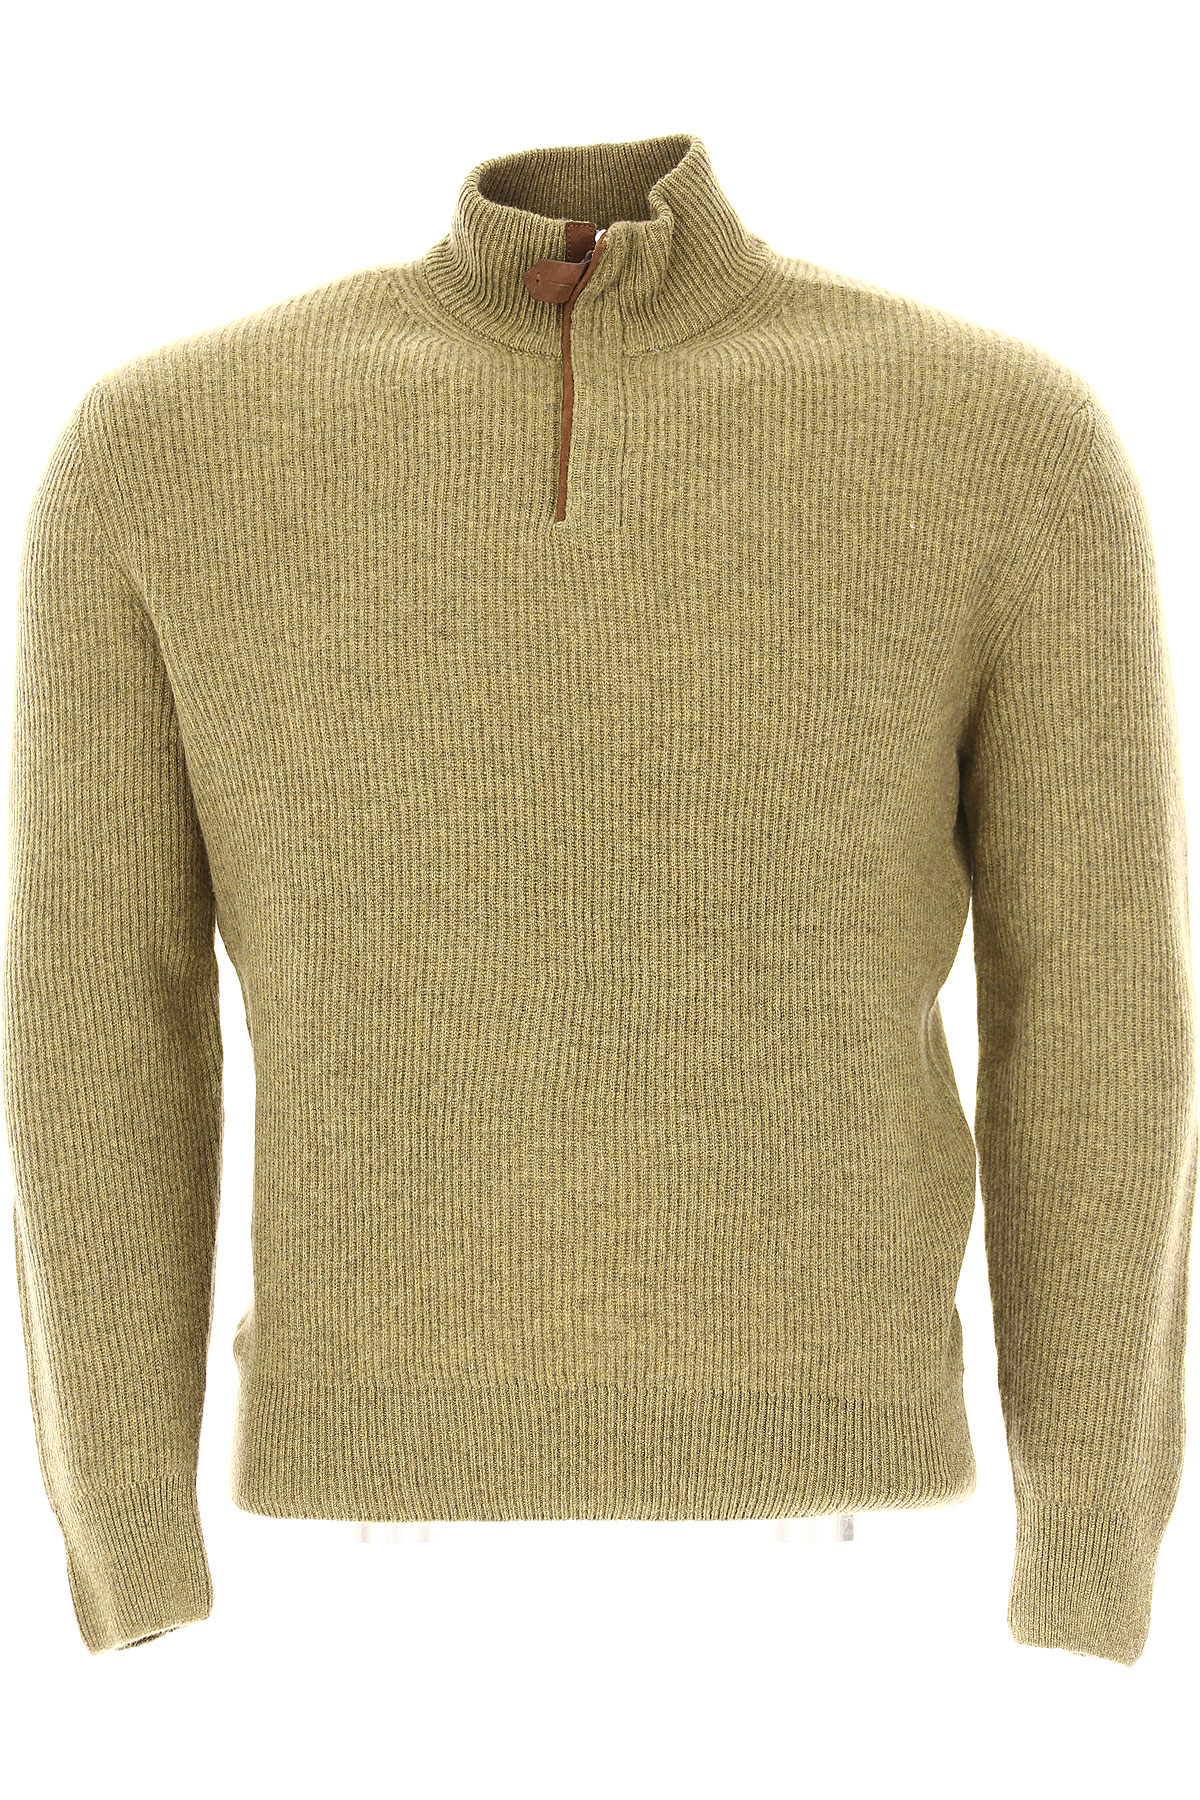 Ermenegildo Zegna Sweater for Men Jumper On Sale in Outlet, Musk Green, Cashmere, 2017, L M S XL USA-446589